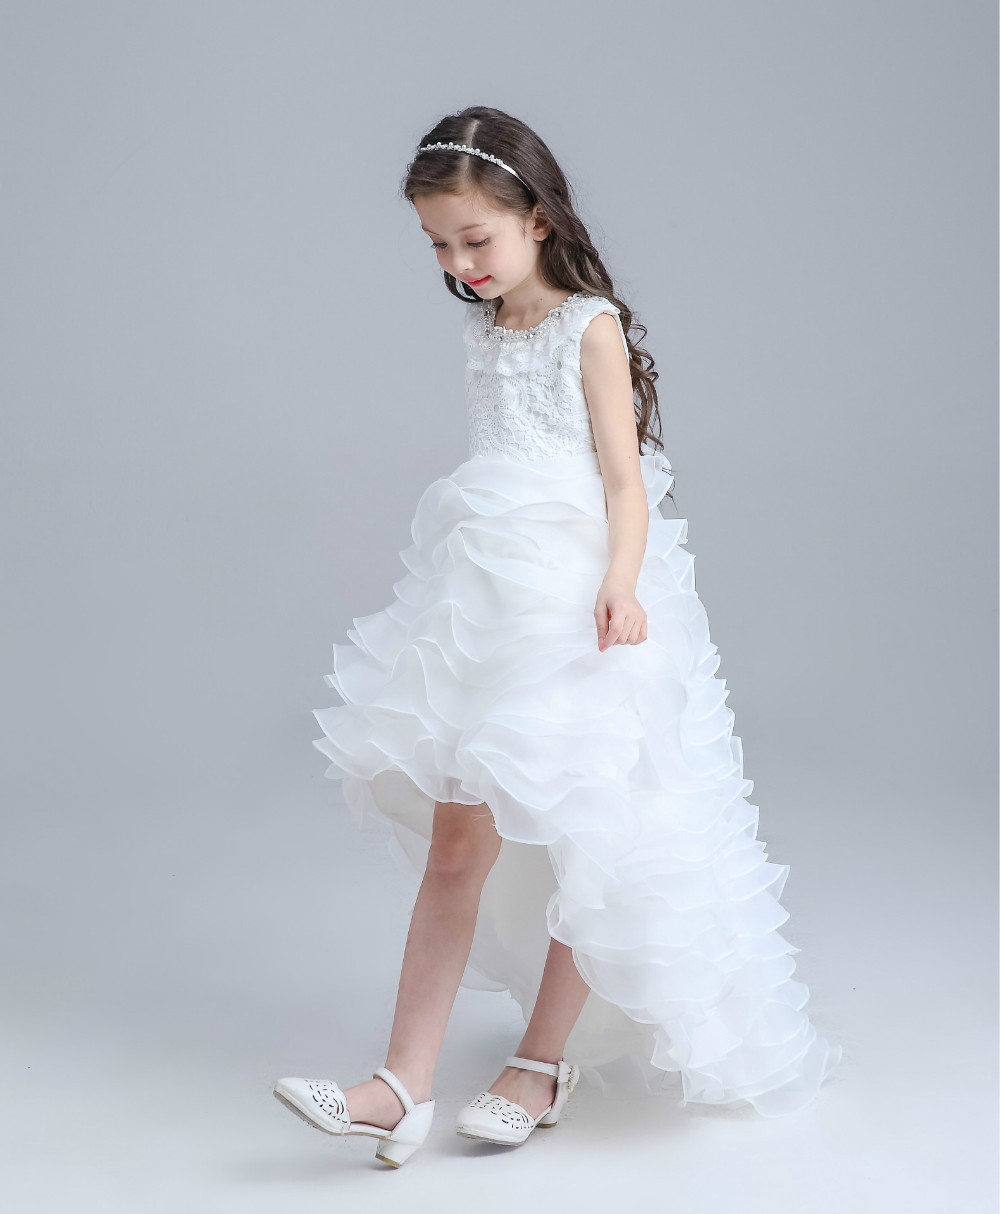 Unique Party Dress White Gift - All Wedding Dresses ...